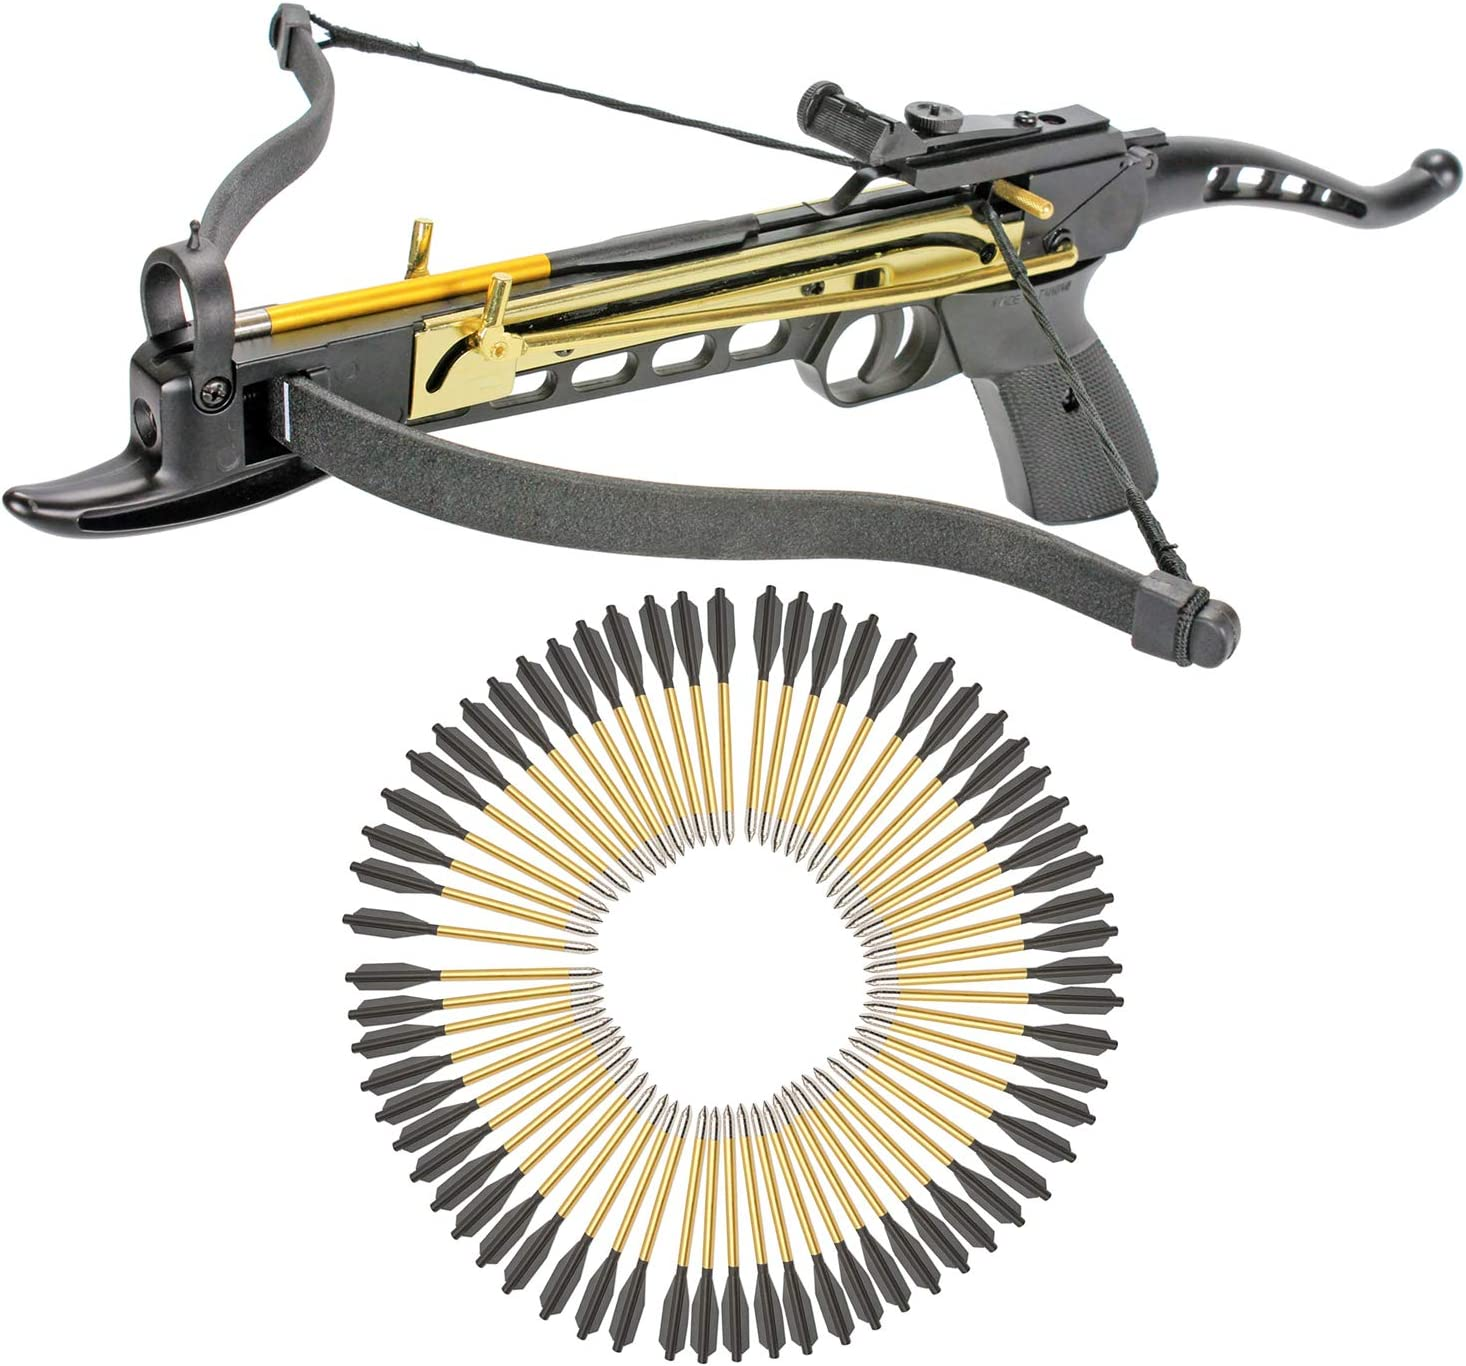 KingsArchery Crossbow Self-Cocking 80 LBS with Adjustable Sights and a Total of 63 Aluminim Arrow Bolt Set